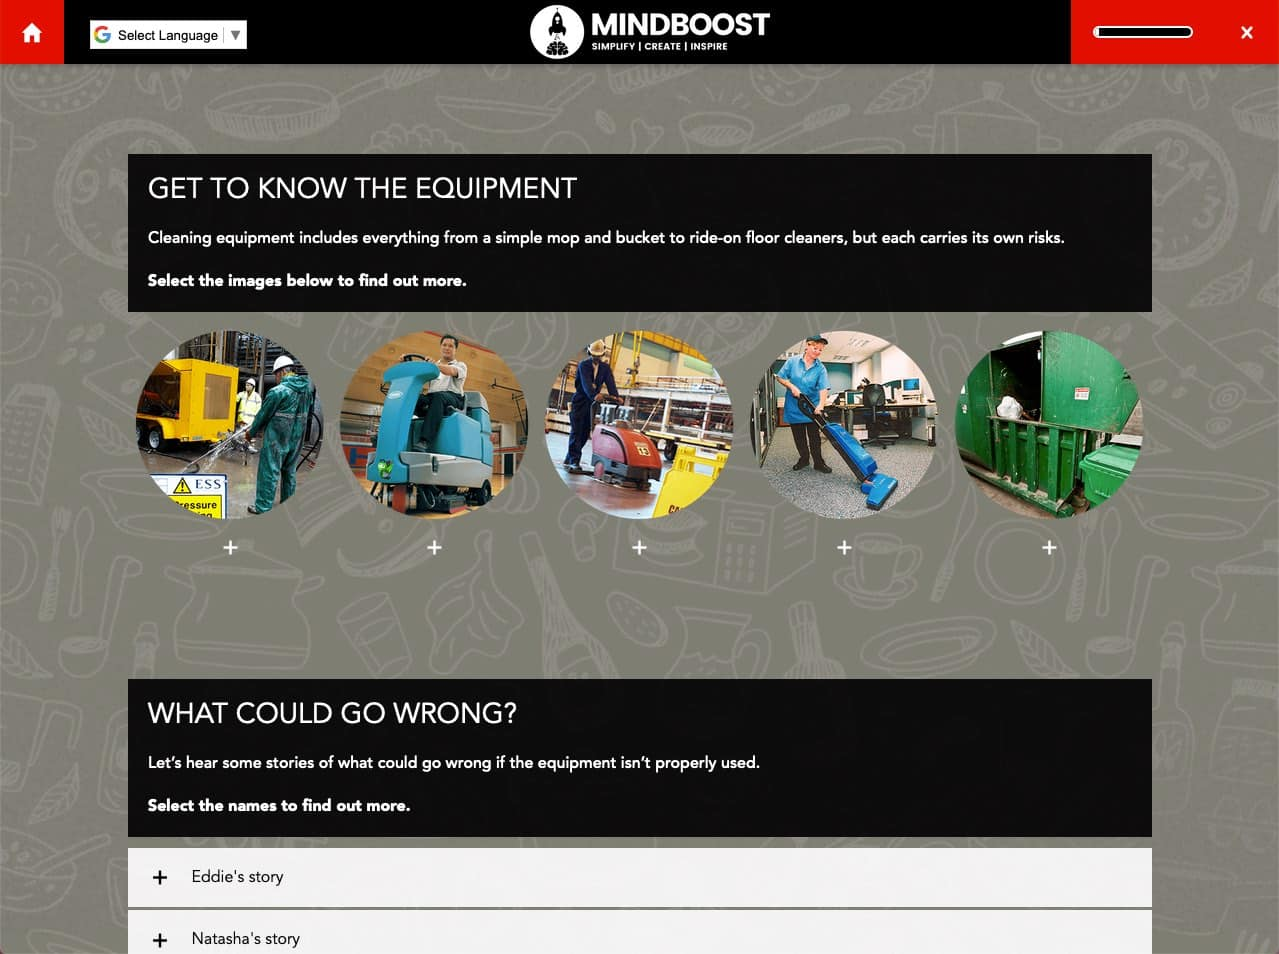 Get to know Equipment